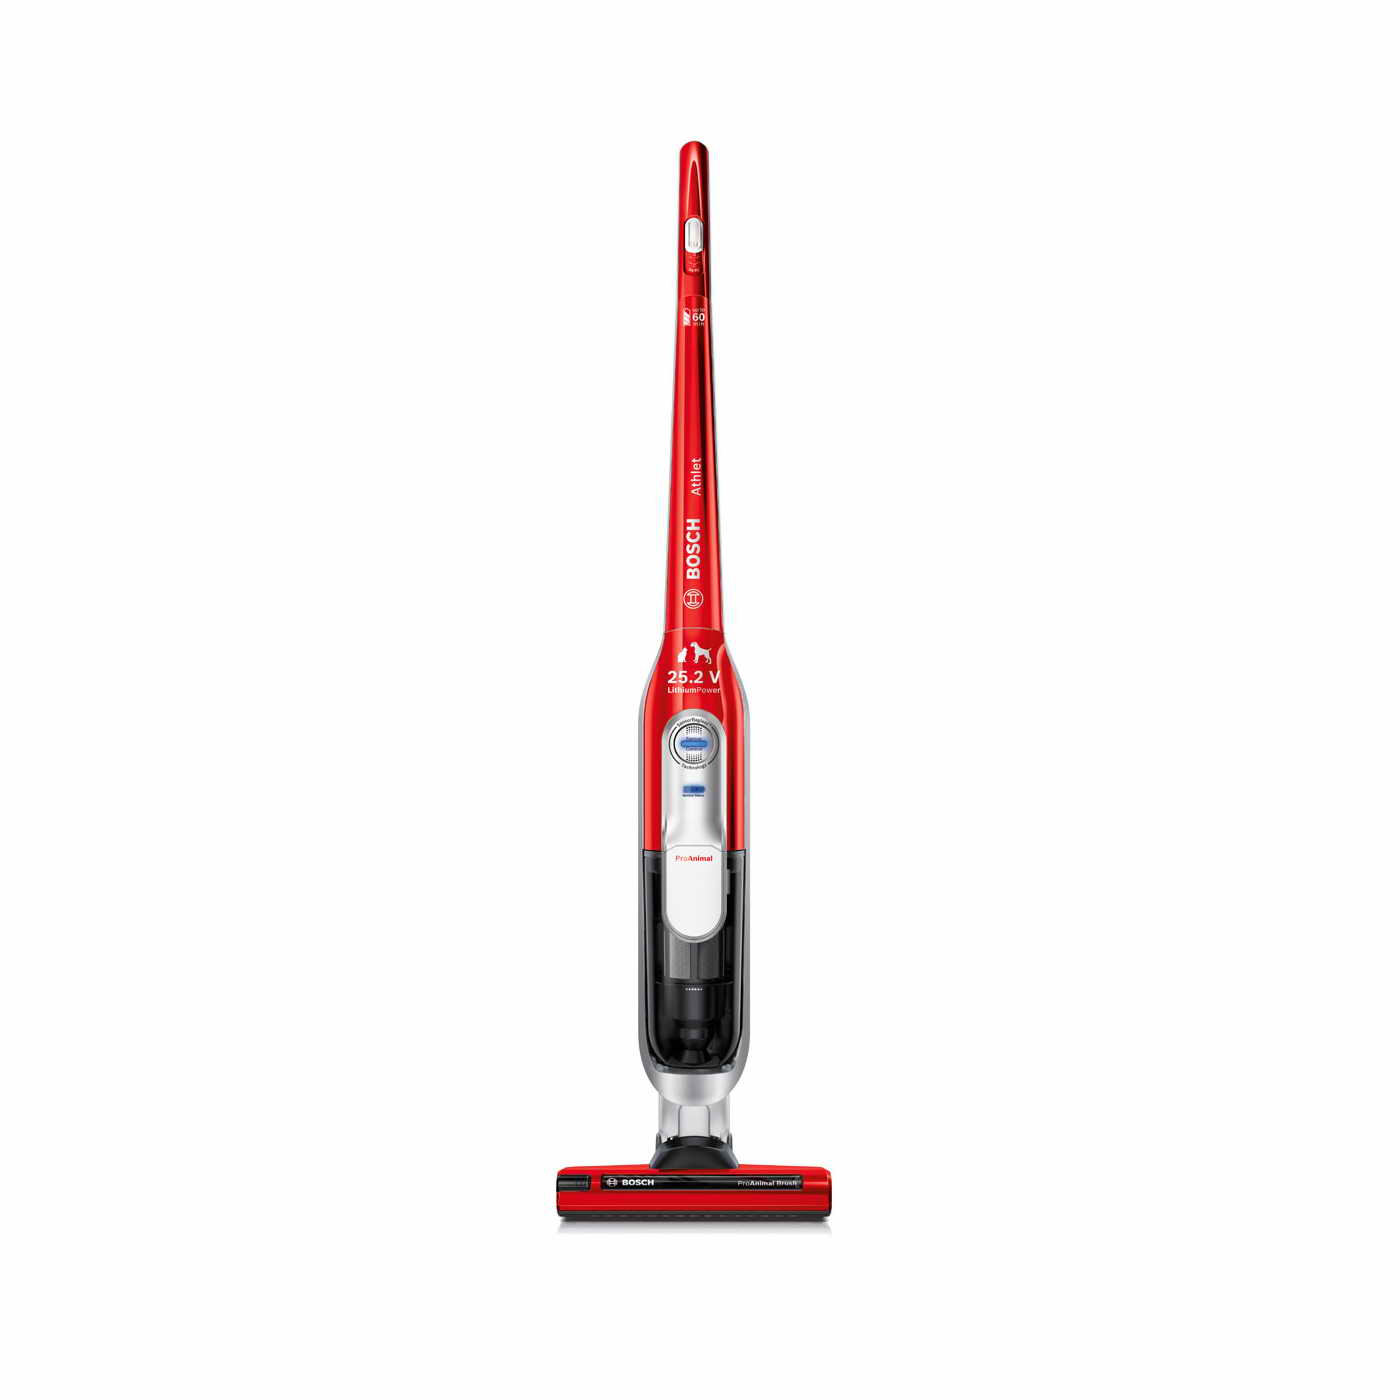 Bosch Athlet Animal Pro Cordless Upright Vacuum Cleaner